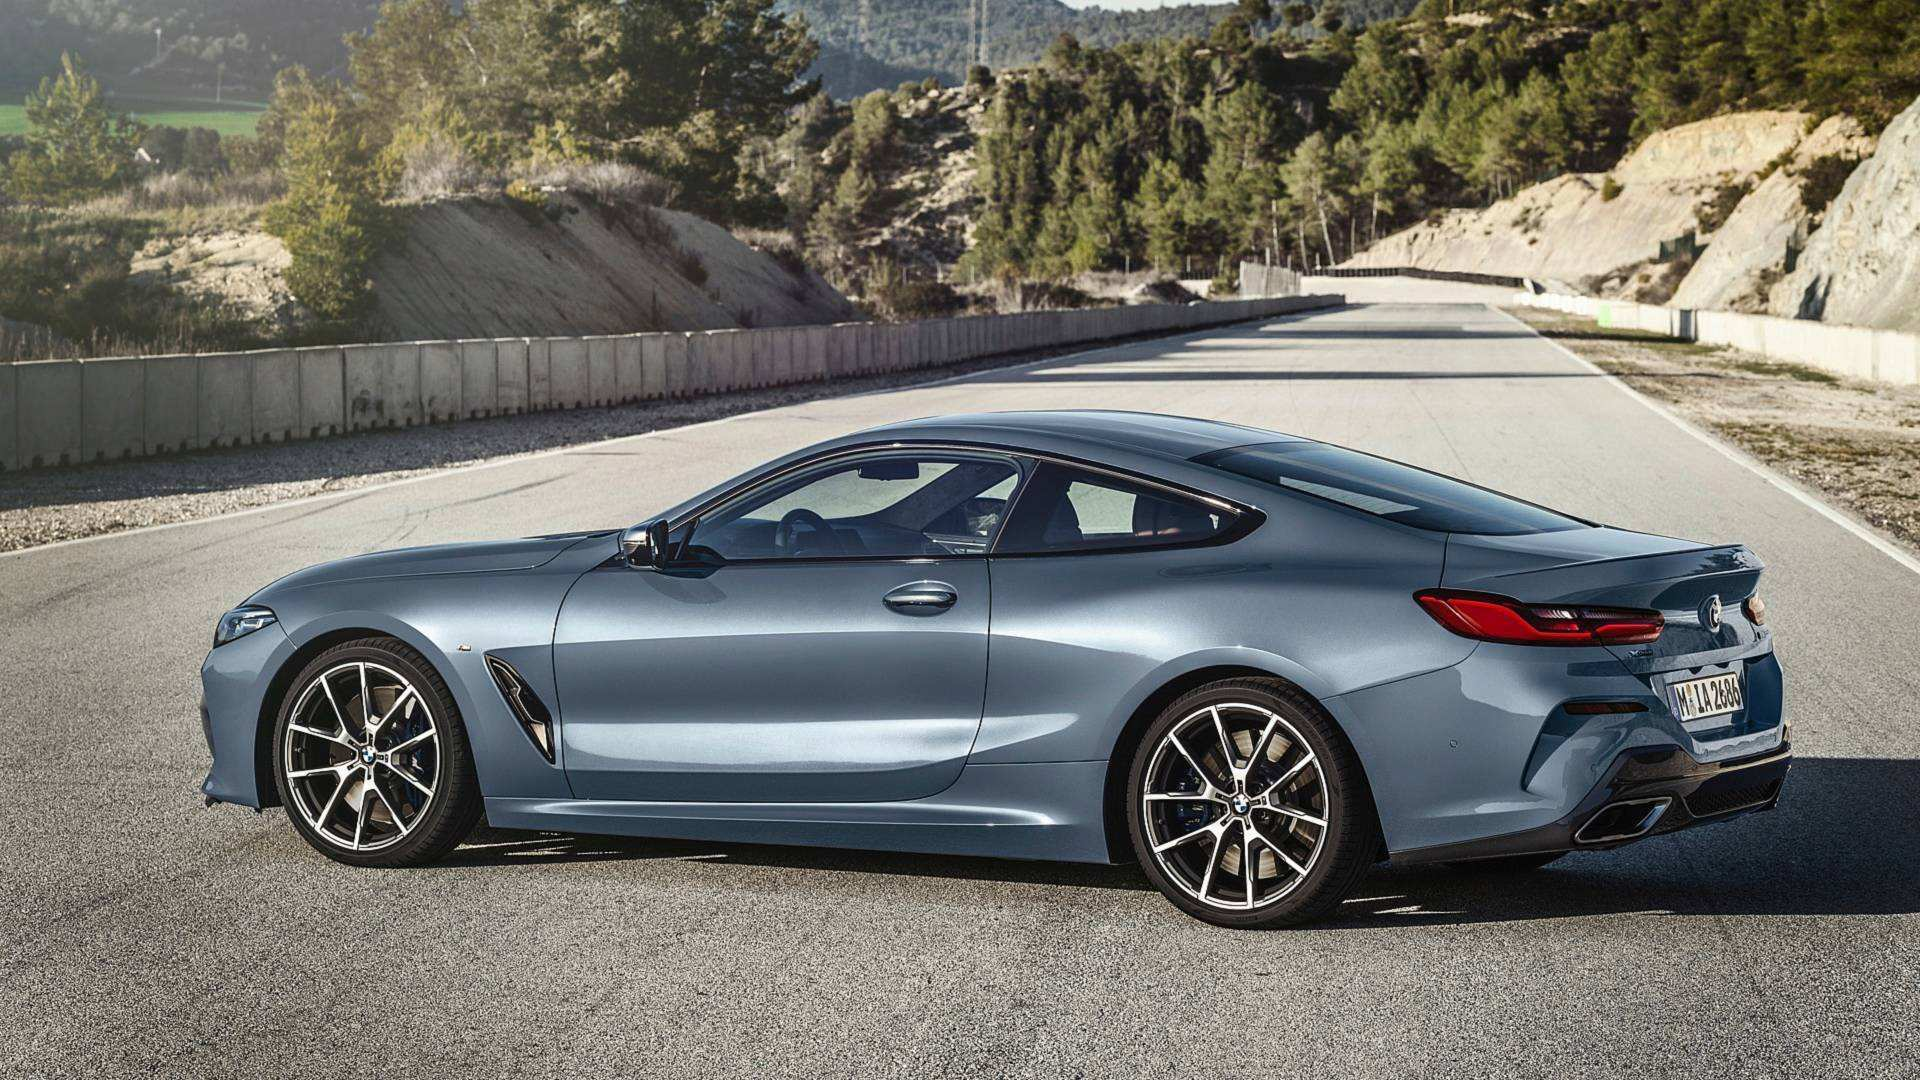 61 The Best 2019 Bmw 9 Series Prices